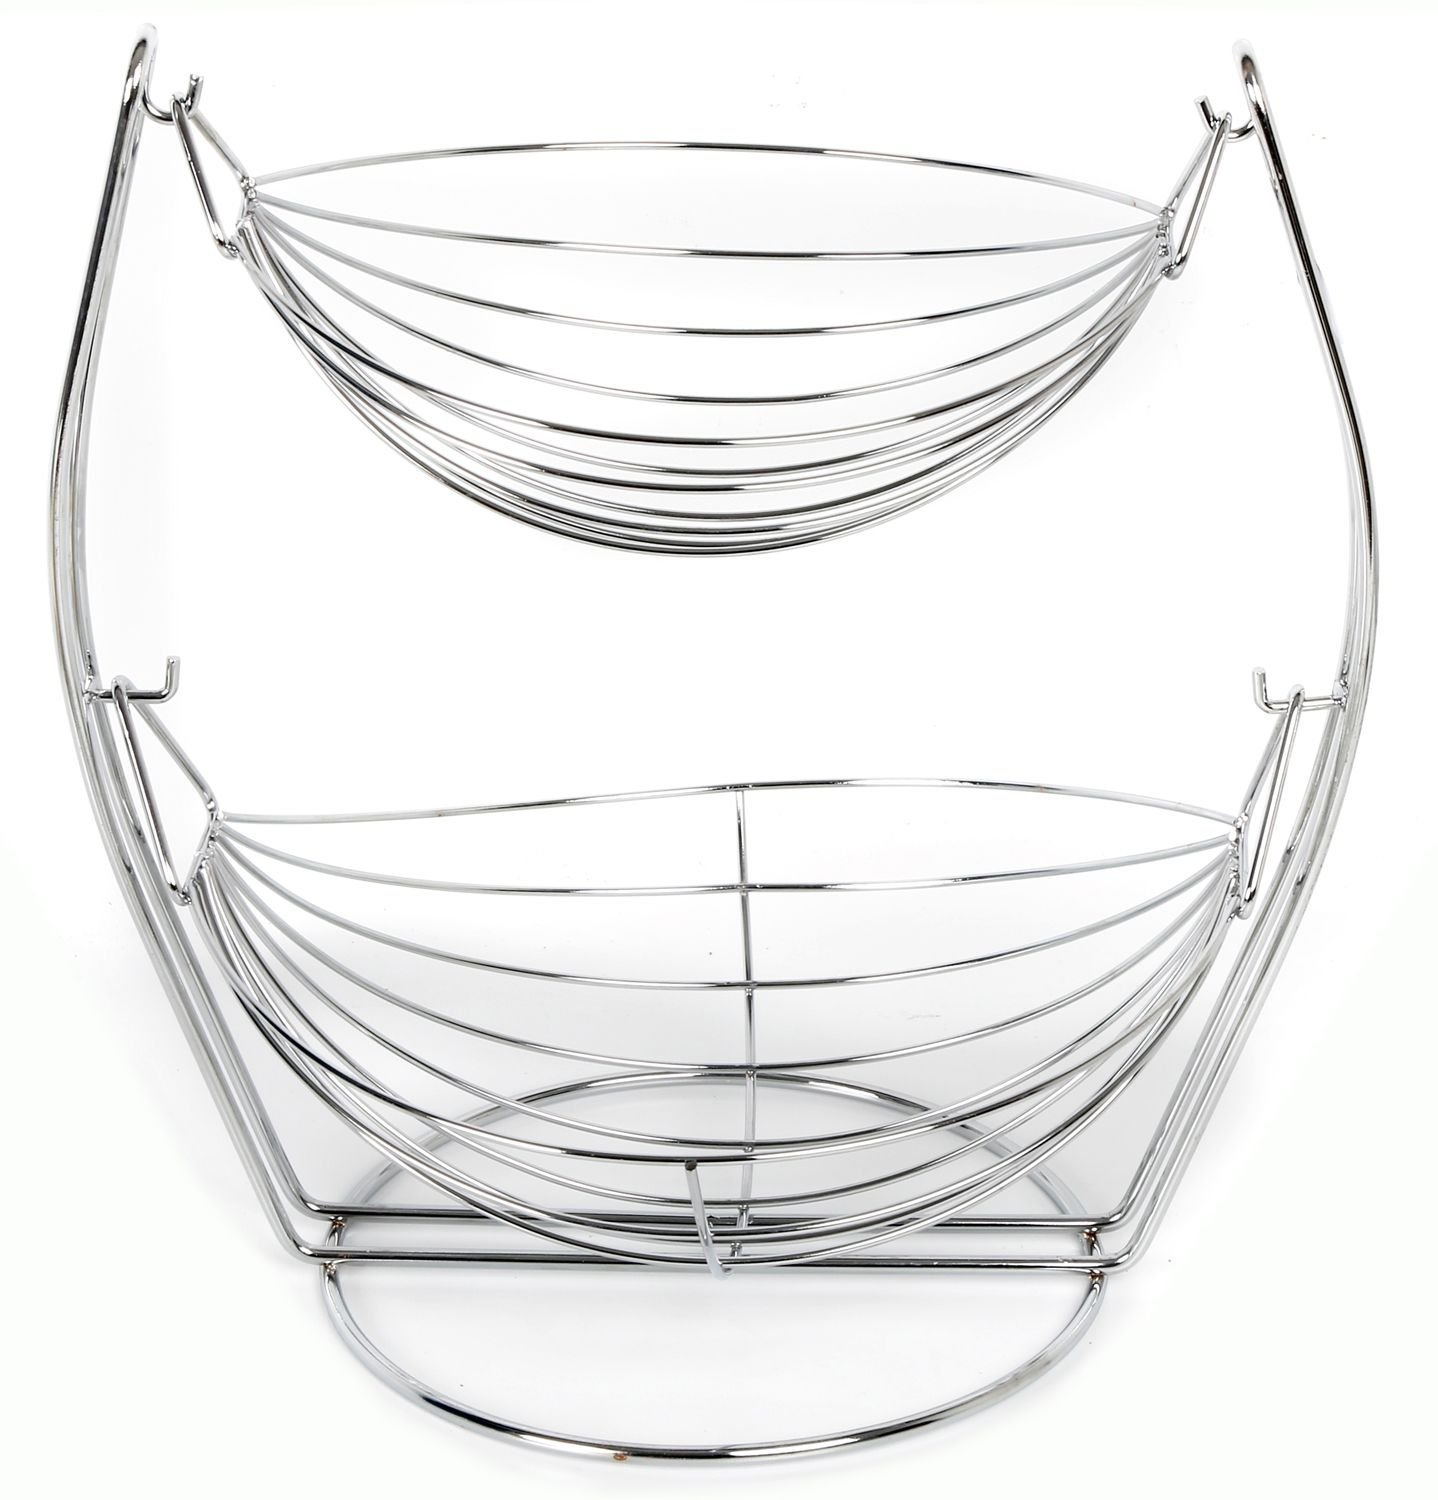 2 Tier Chrome Swinging Fruit Vegetable Bowl Basket Rack Storage Stand Holder New Sifcon